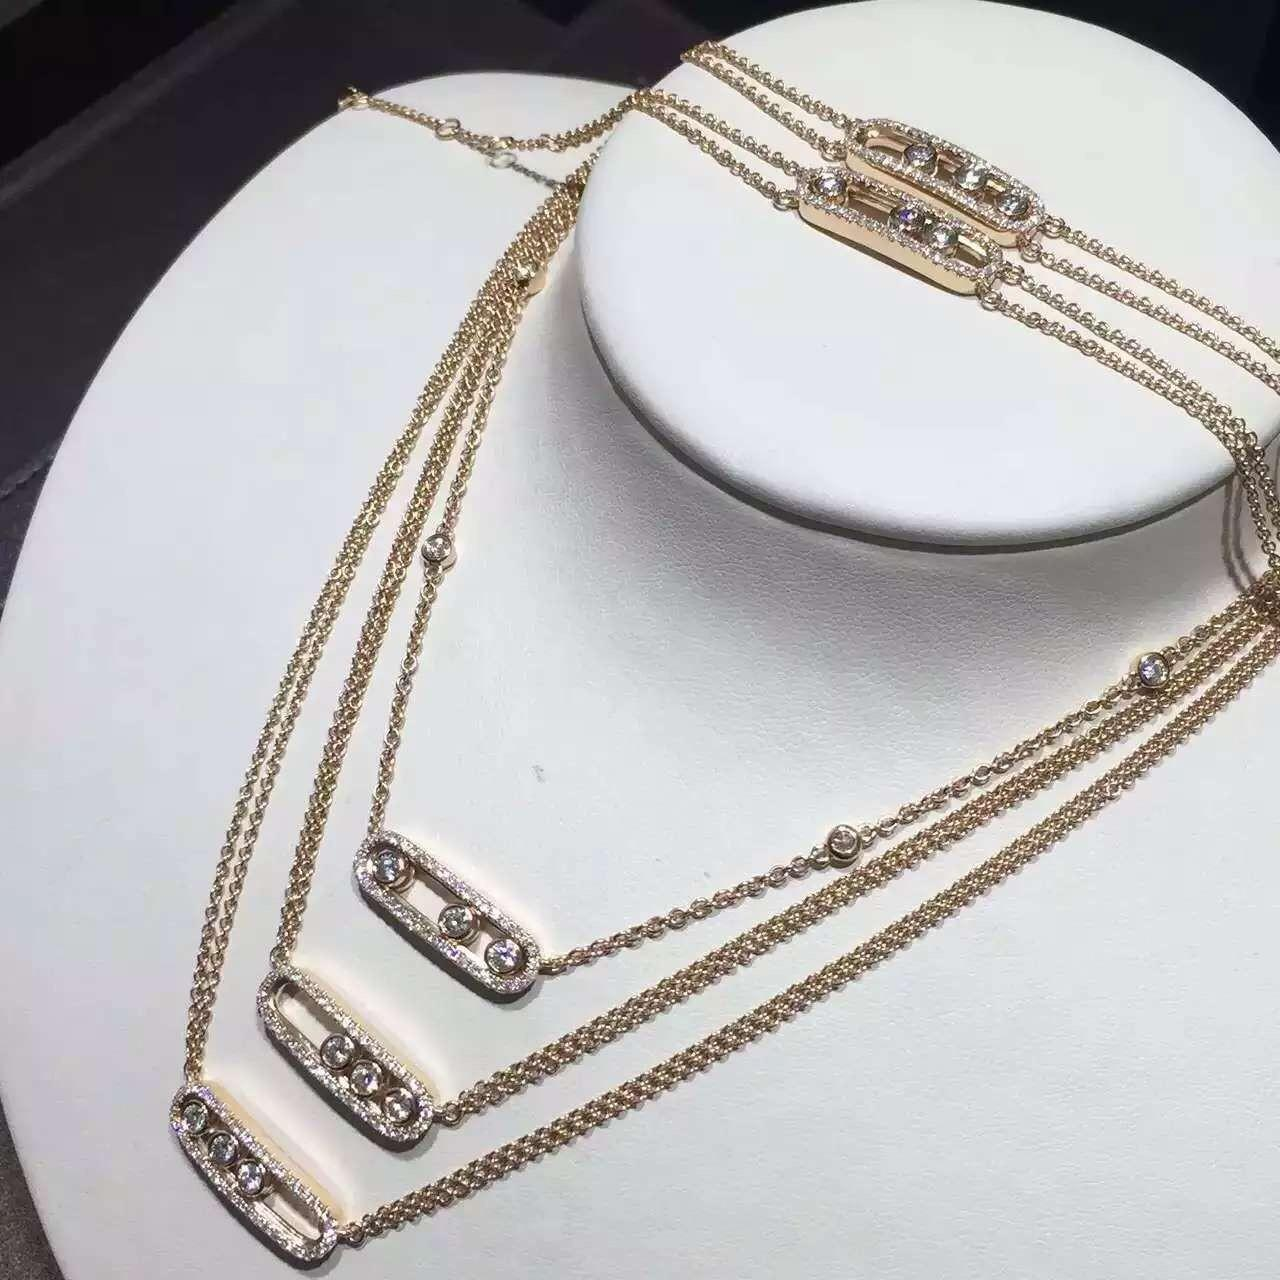 China Messika move diamond necklace in yellow gold paris fine jewelry worldwide shipping wholesale